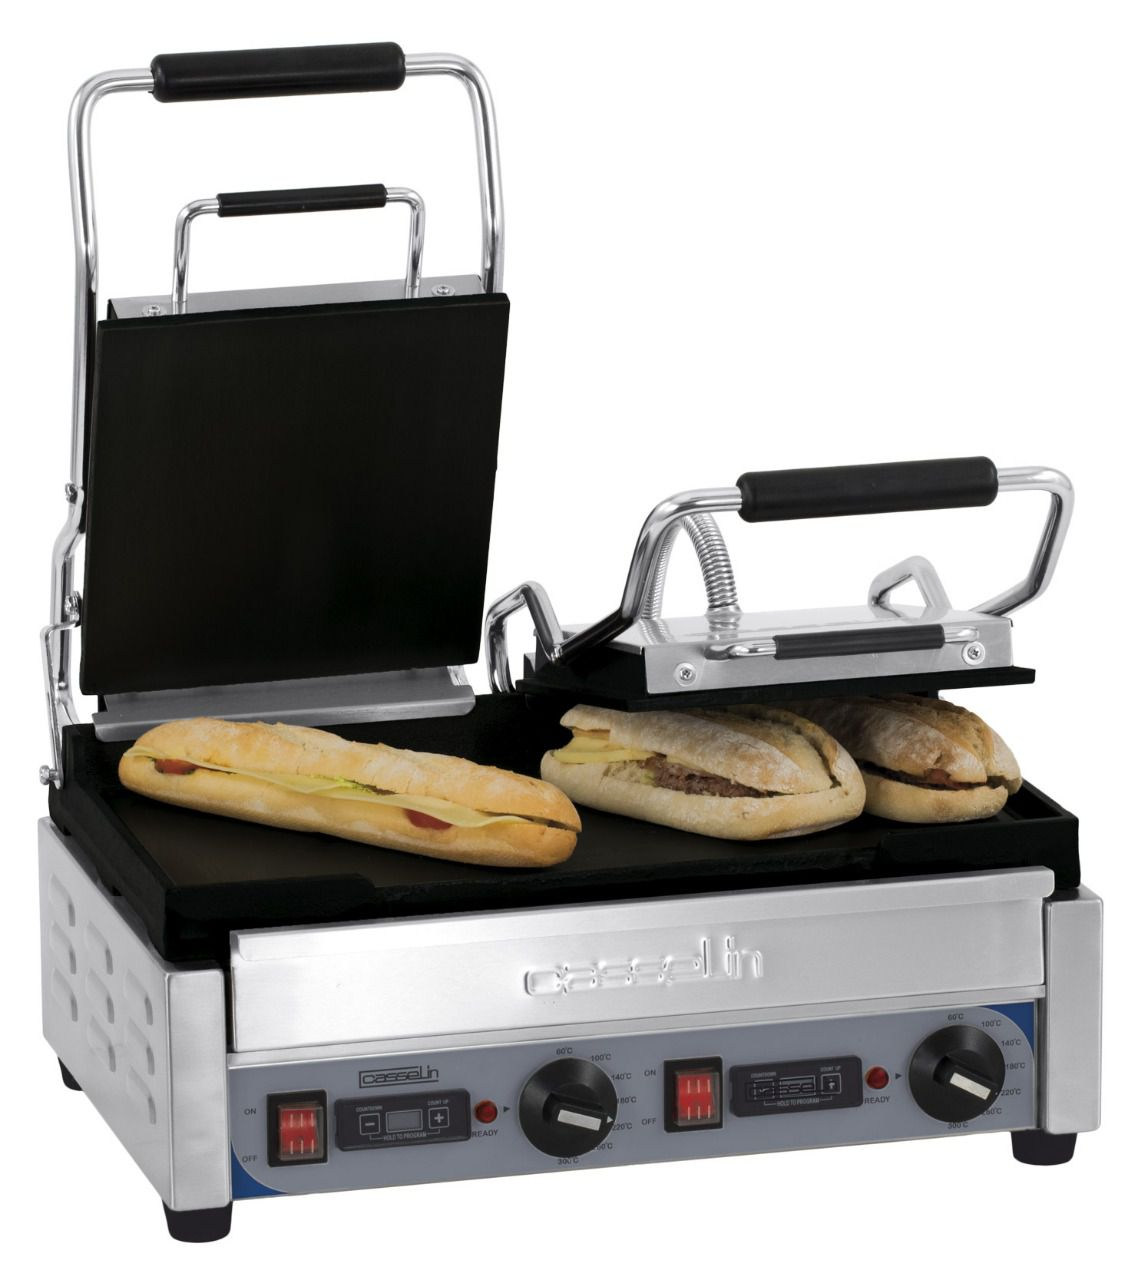 Grill panini double lisse-lisse minuteur, 230v, 2900w